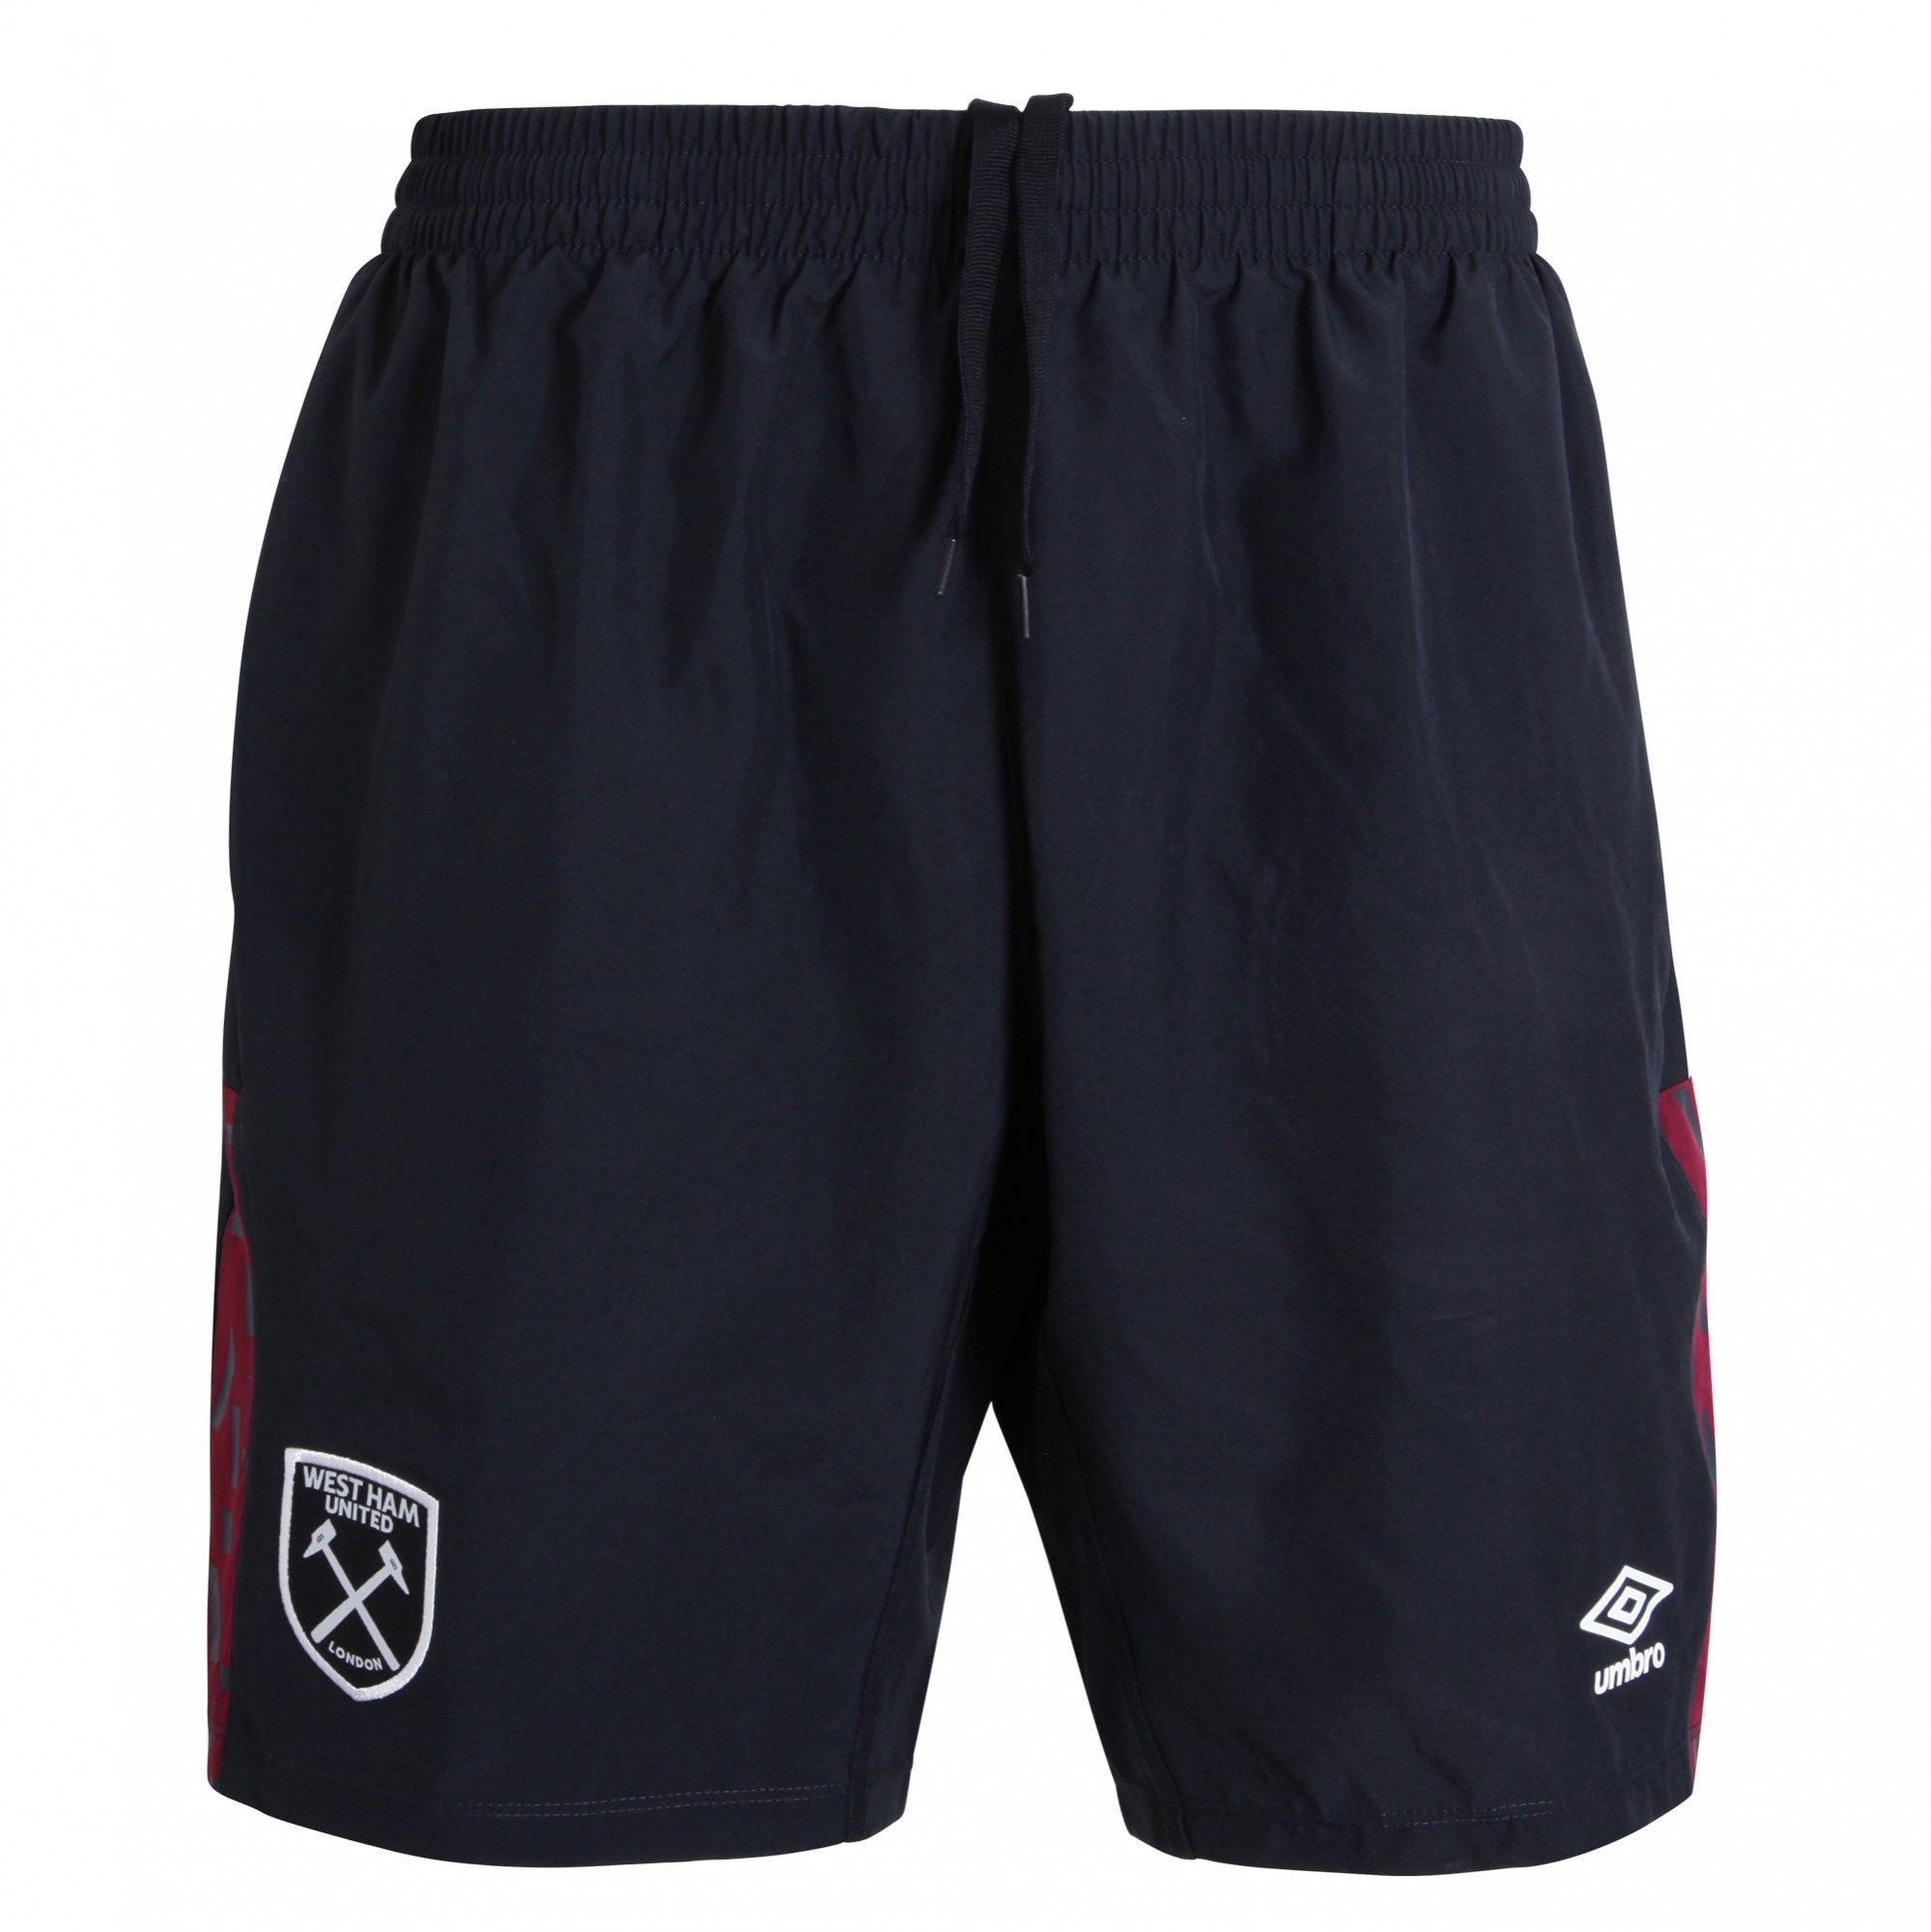 2016/17 ADULT TRAINING WOVEN SHORTS GALAXY